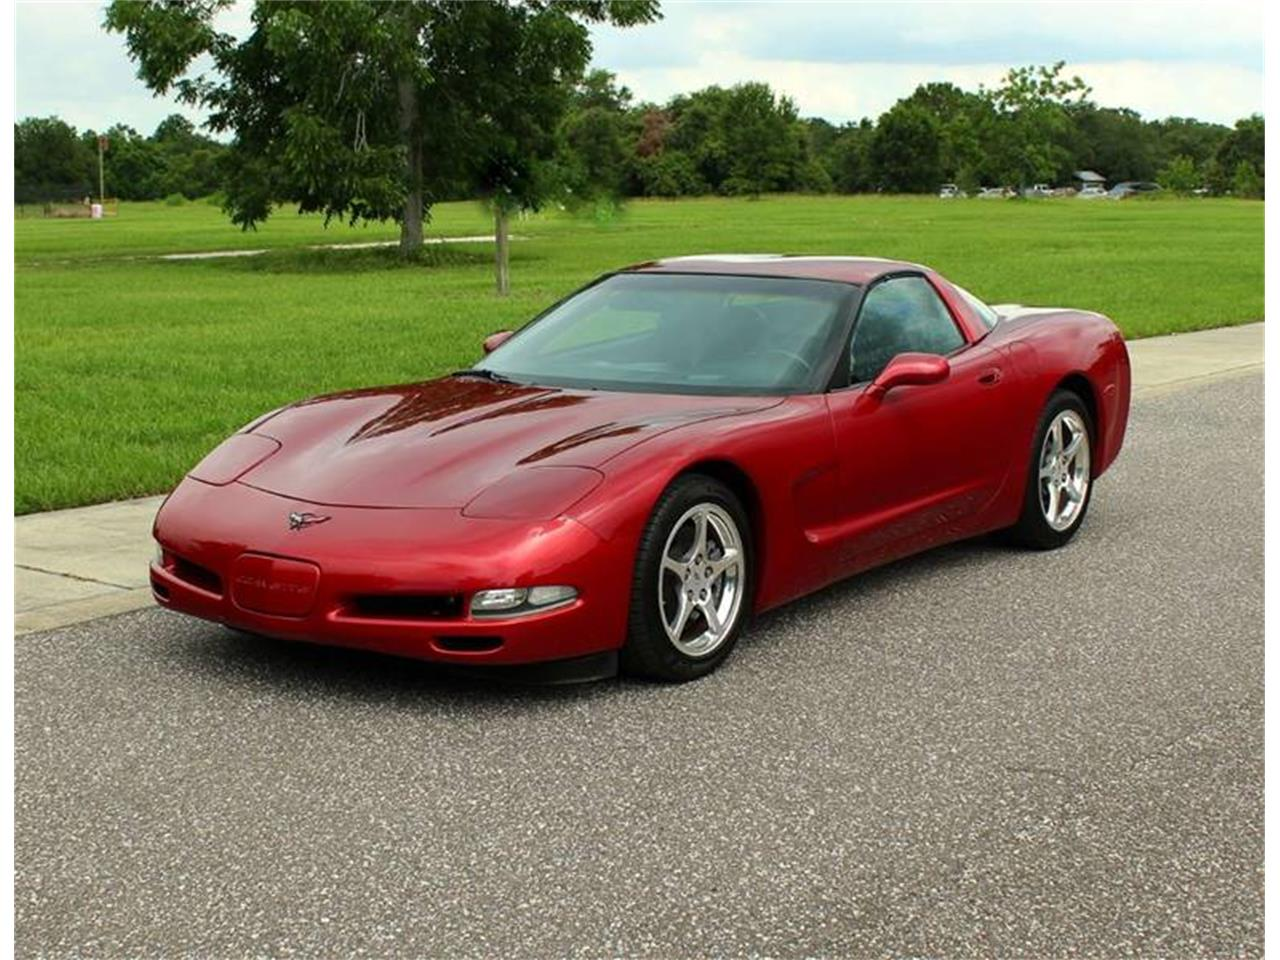 Large Picture of 2004 Corvette located in Florida - $13,900.00 - QCZ4